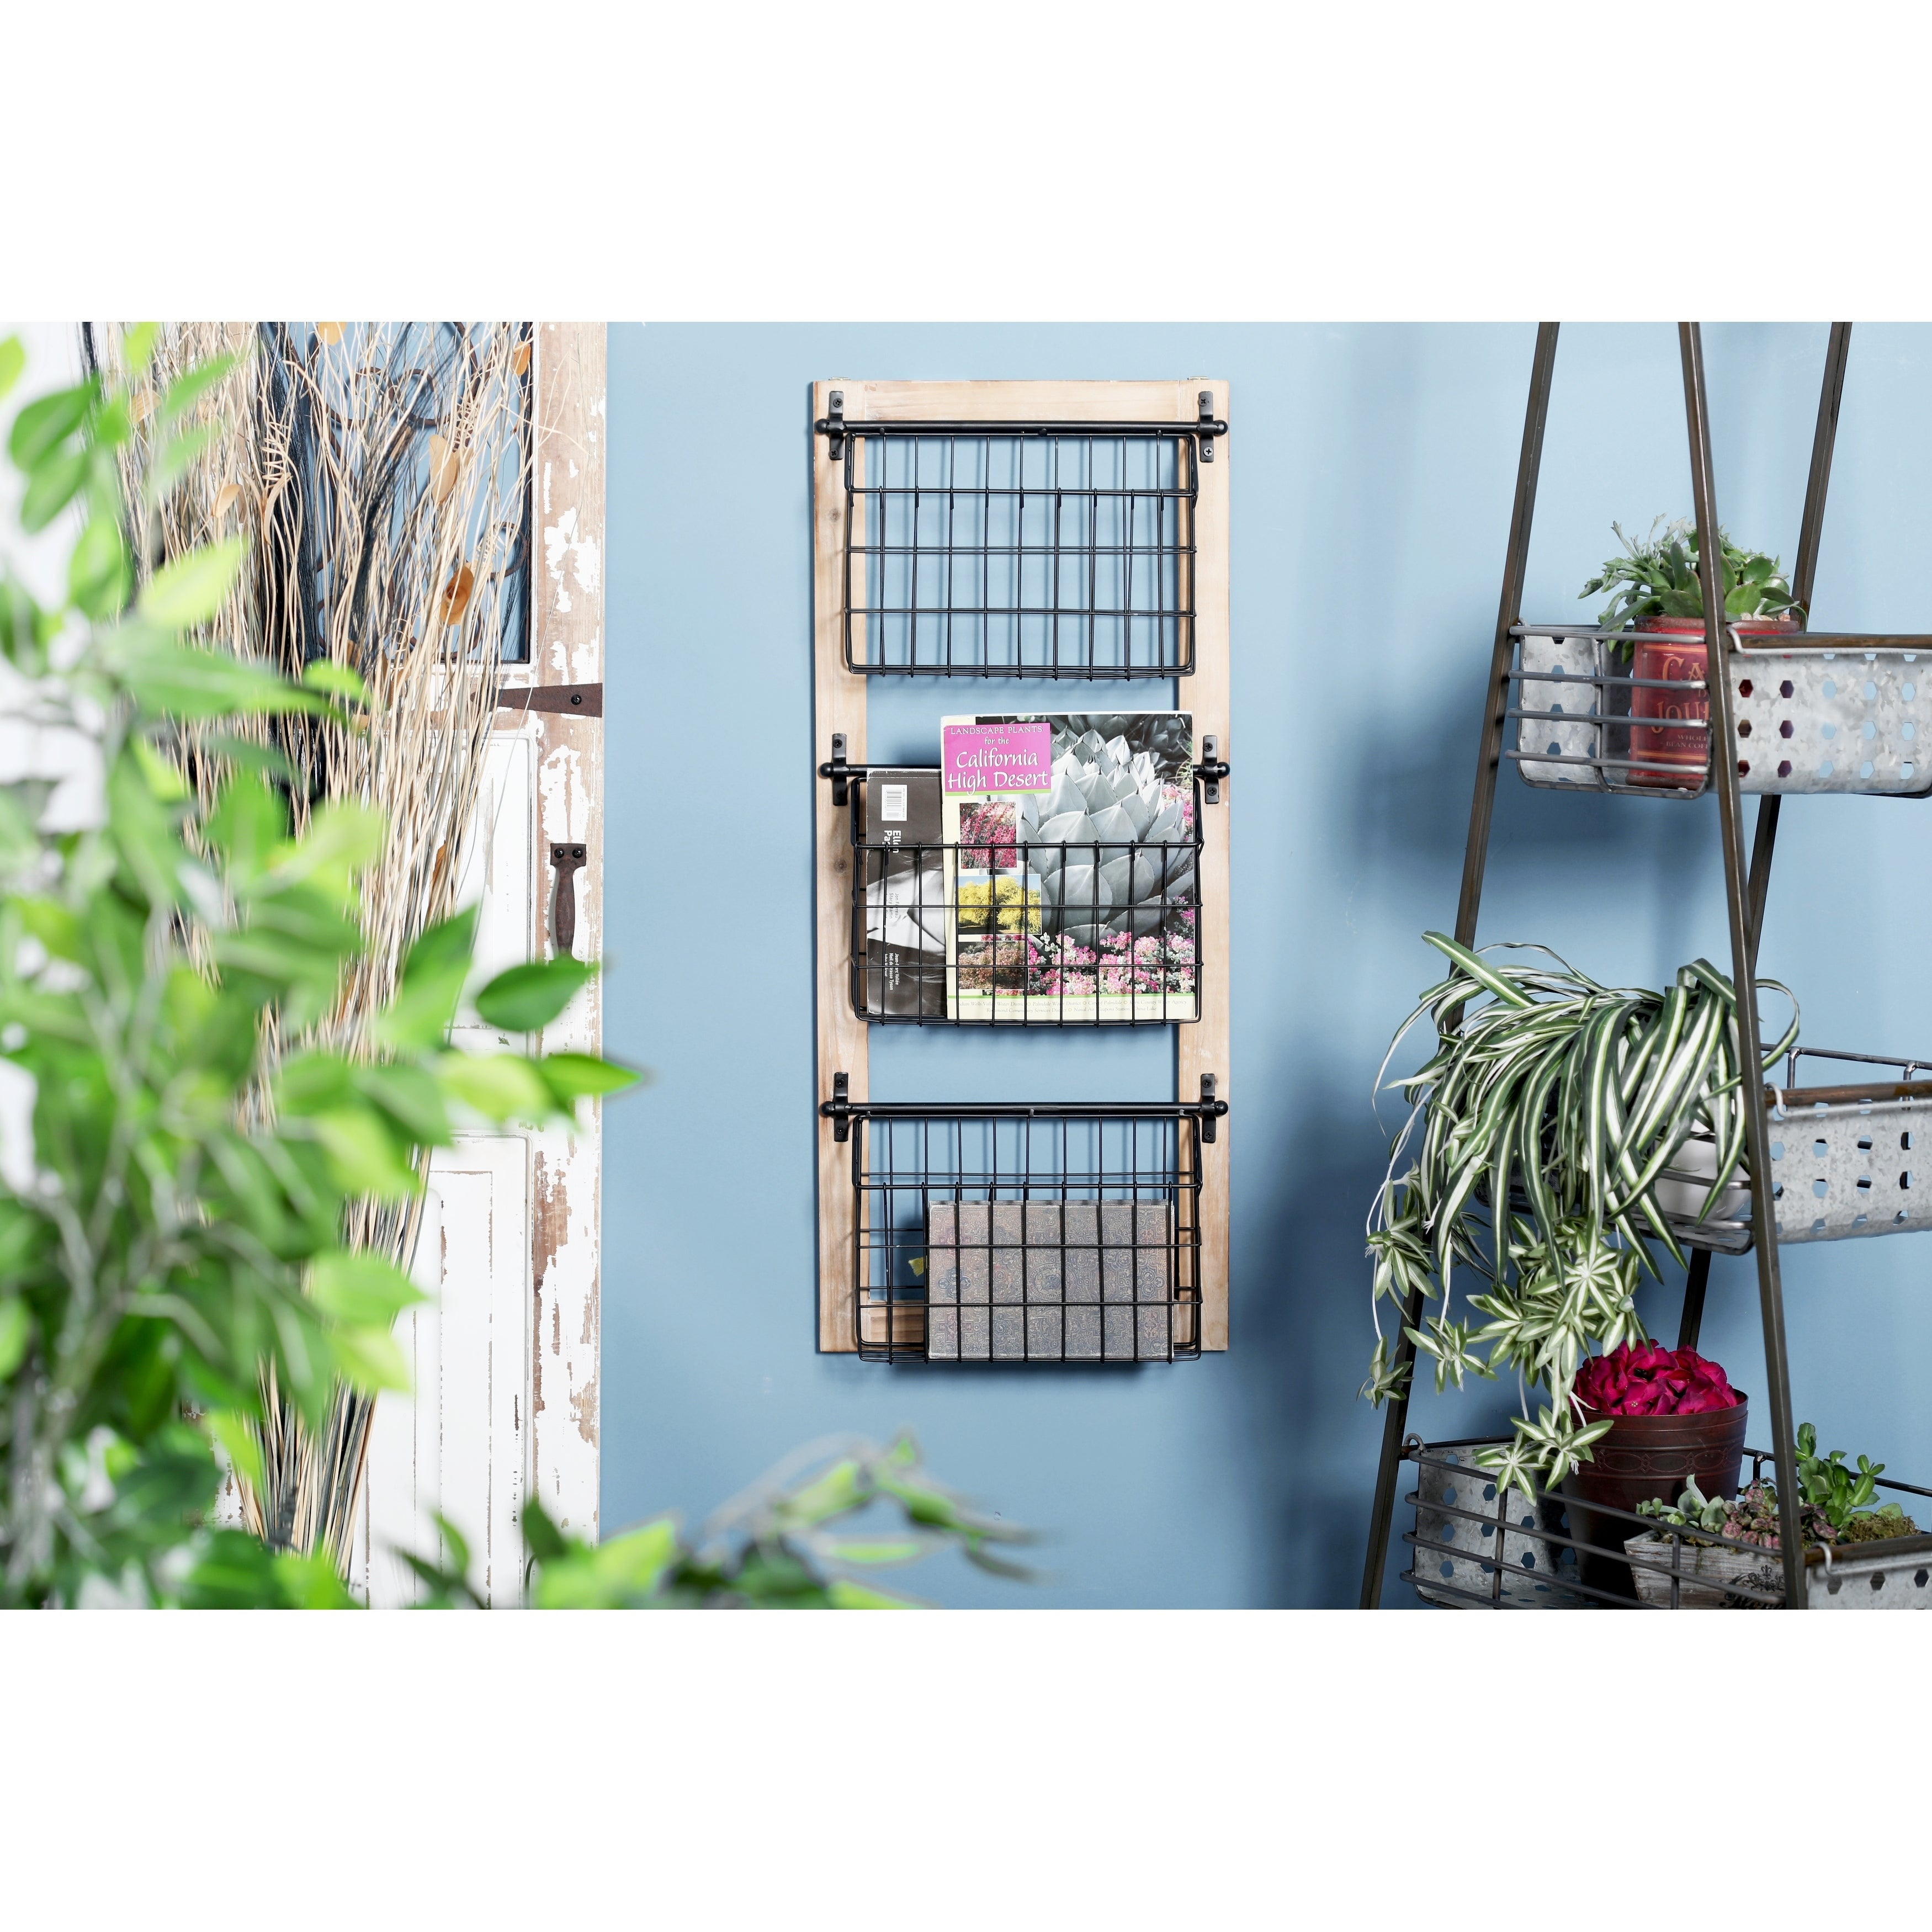 Farmhouse 3 Tiered Square Iron Basket Wall Rack By Studio 350 On Sale Overstock 19559861